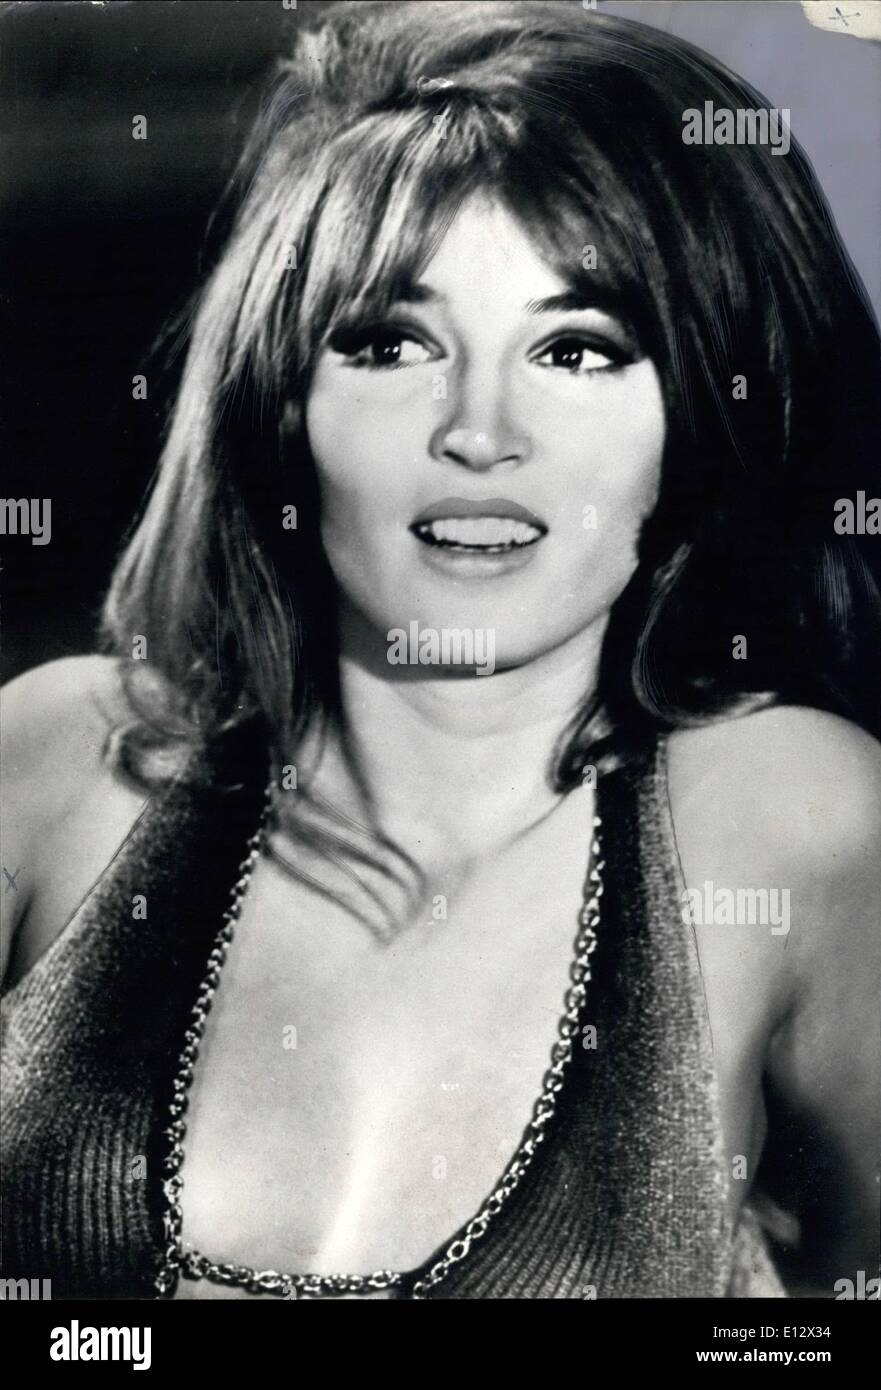 Feb. 26, 2012 - Mrs. Peulgetty, Jr. Talitha Pol in ''Barbarella'' role. - Stock Image